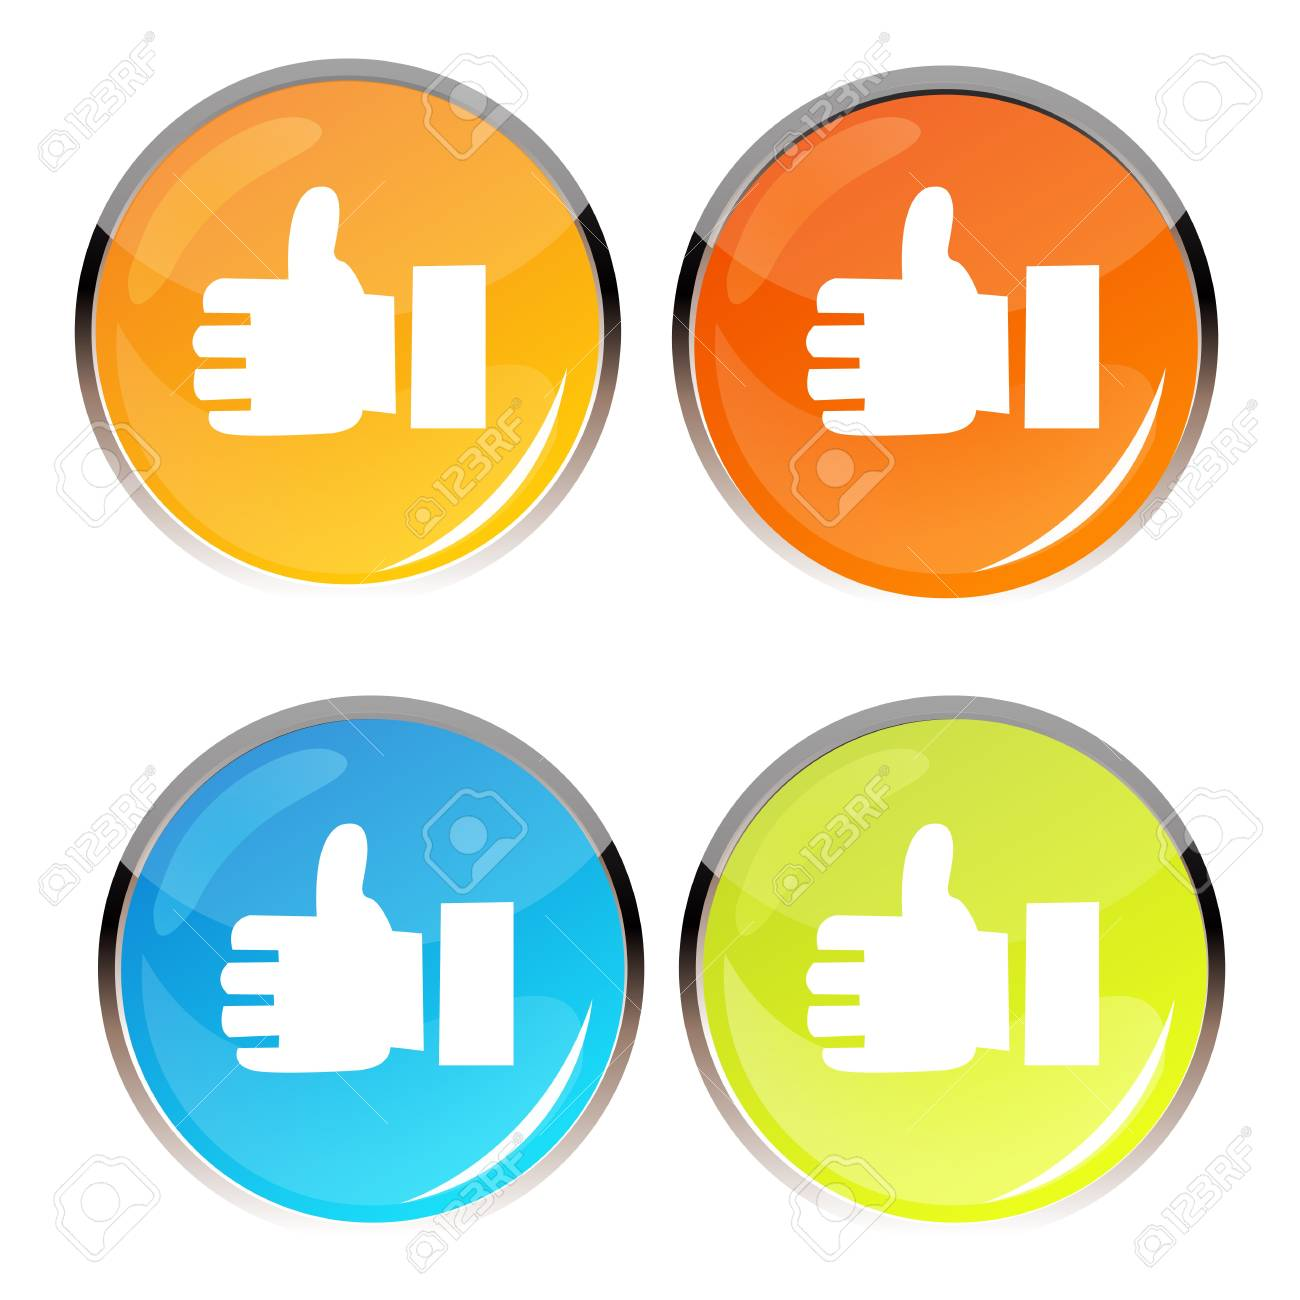 illustration of thumbs up symbol on white background Stock Vector - 8247357